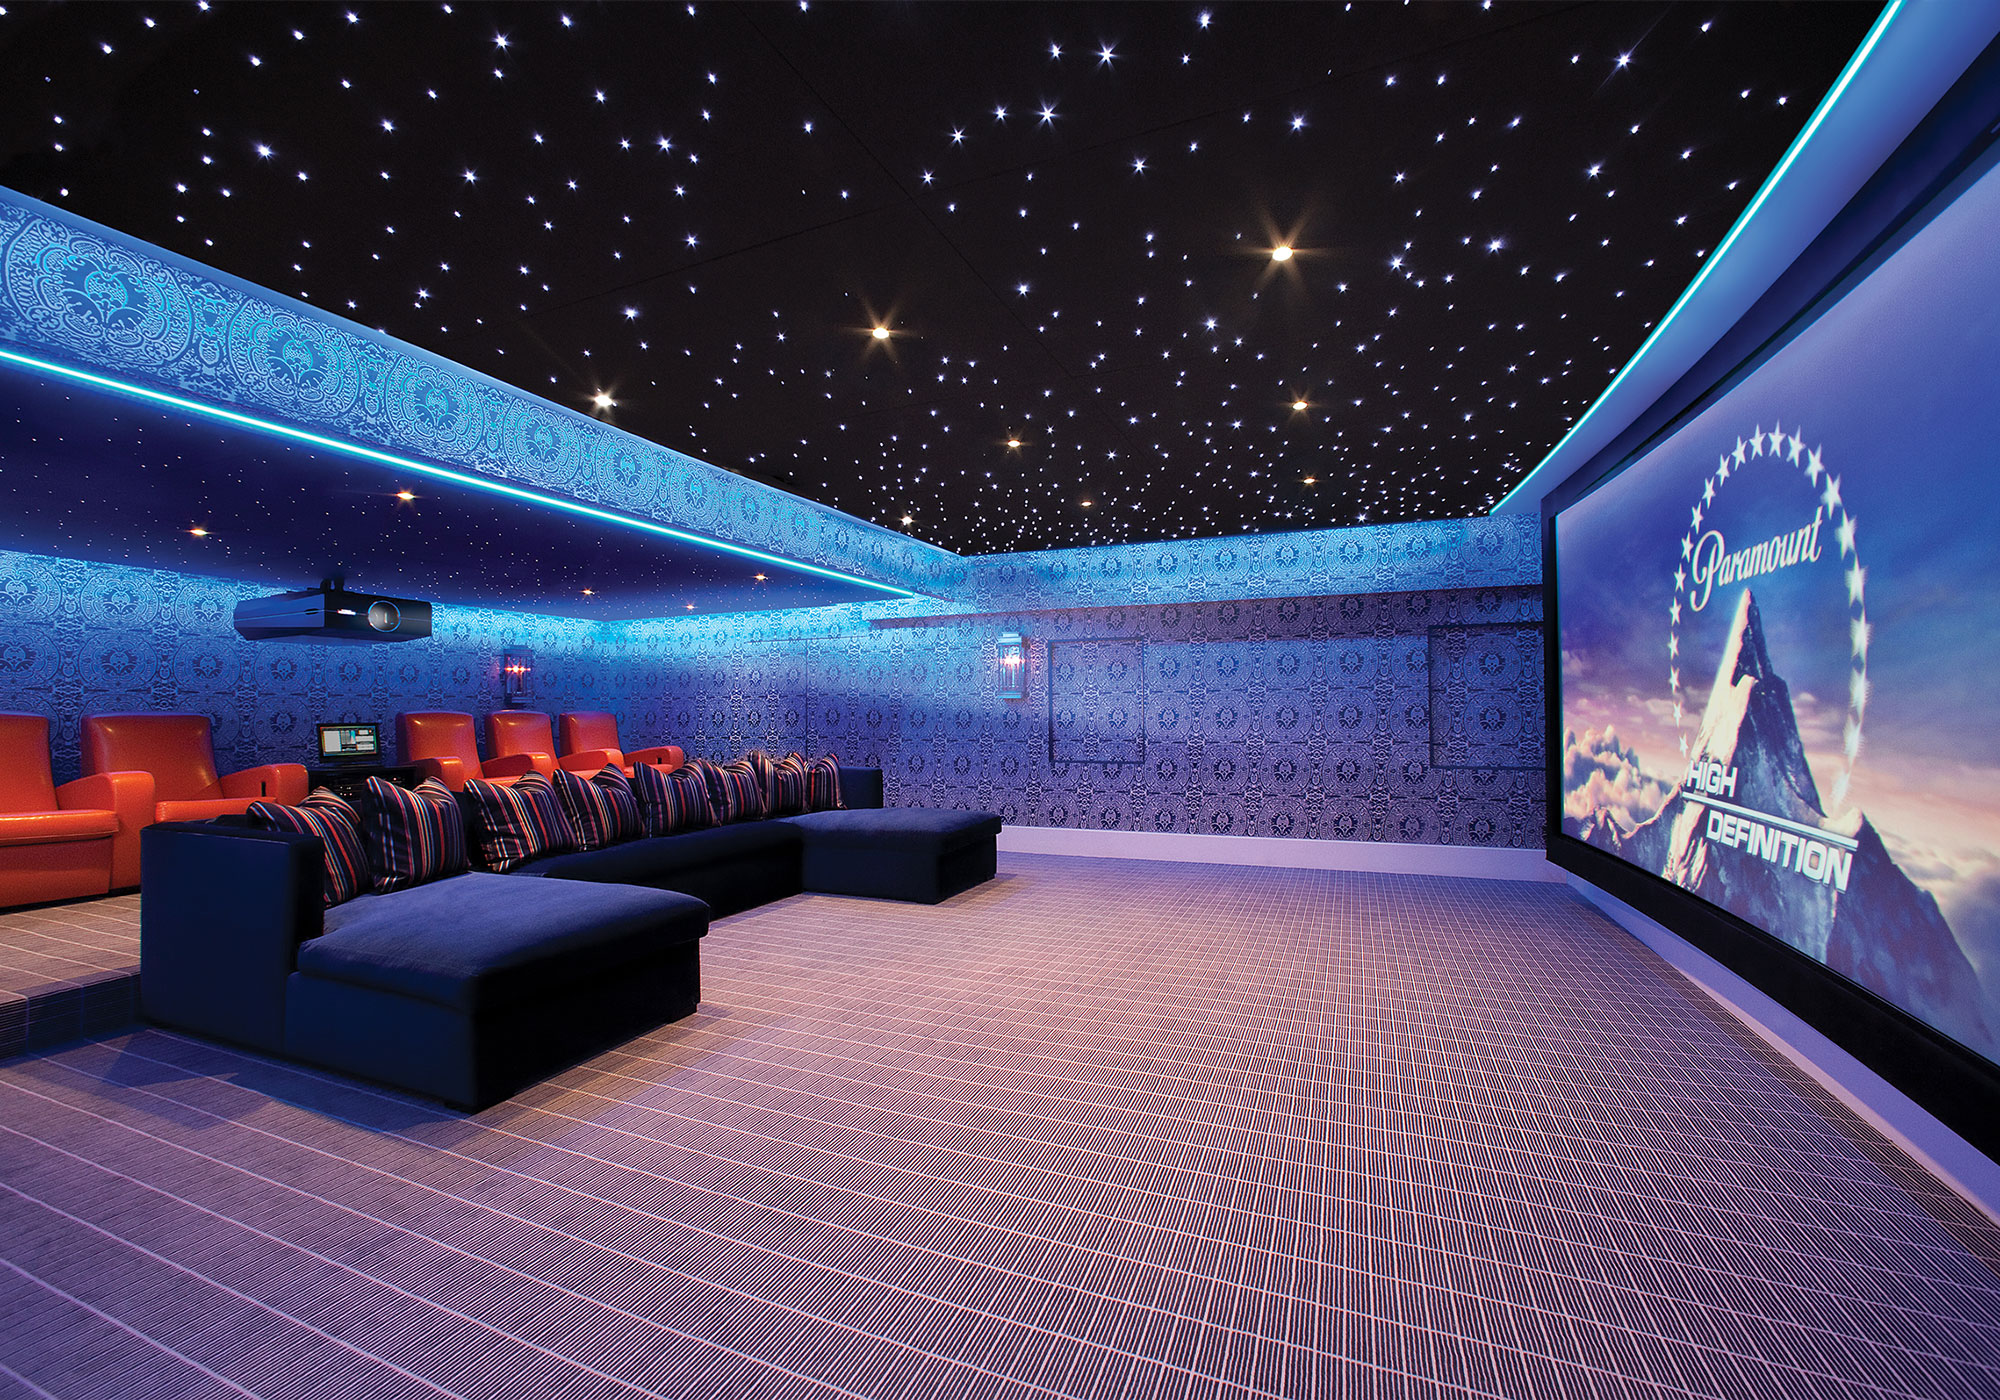 theater, projection system, movie screen, LED, alcove lighting, star ceiling